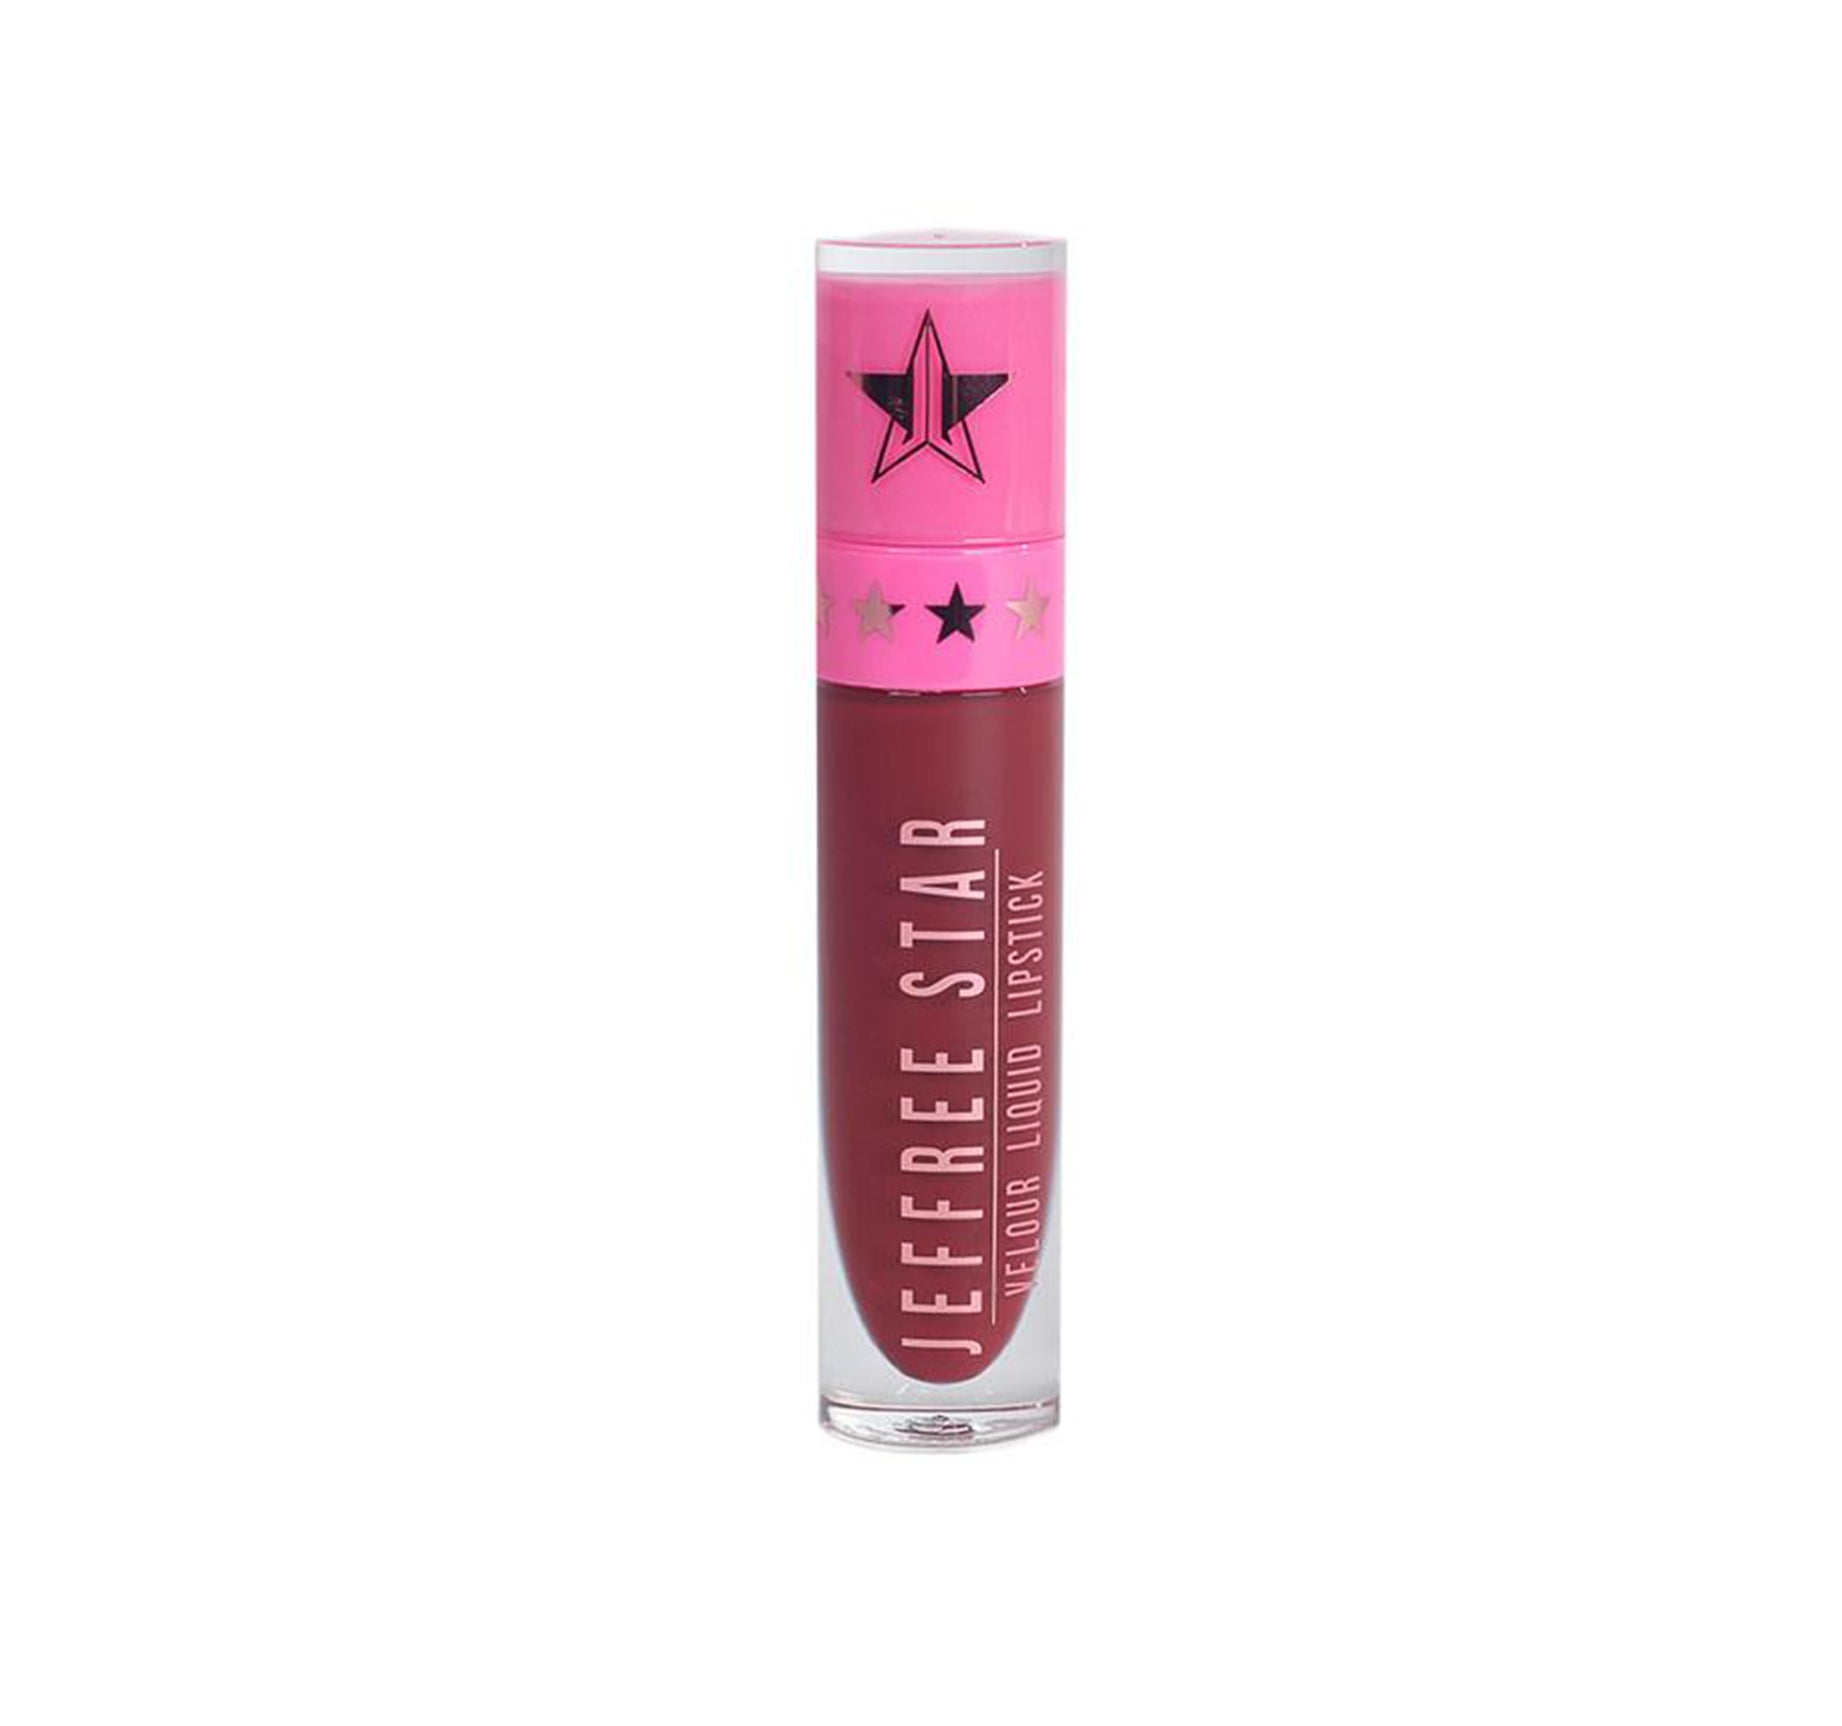 VELOUR LIQUID LIPSTICK - DESIGNER BLOOD, view larger image